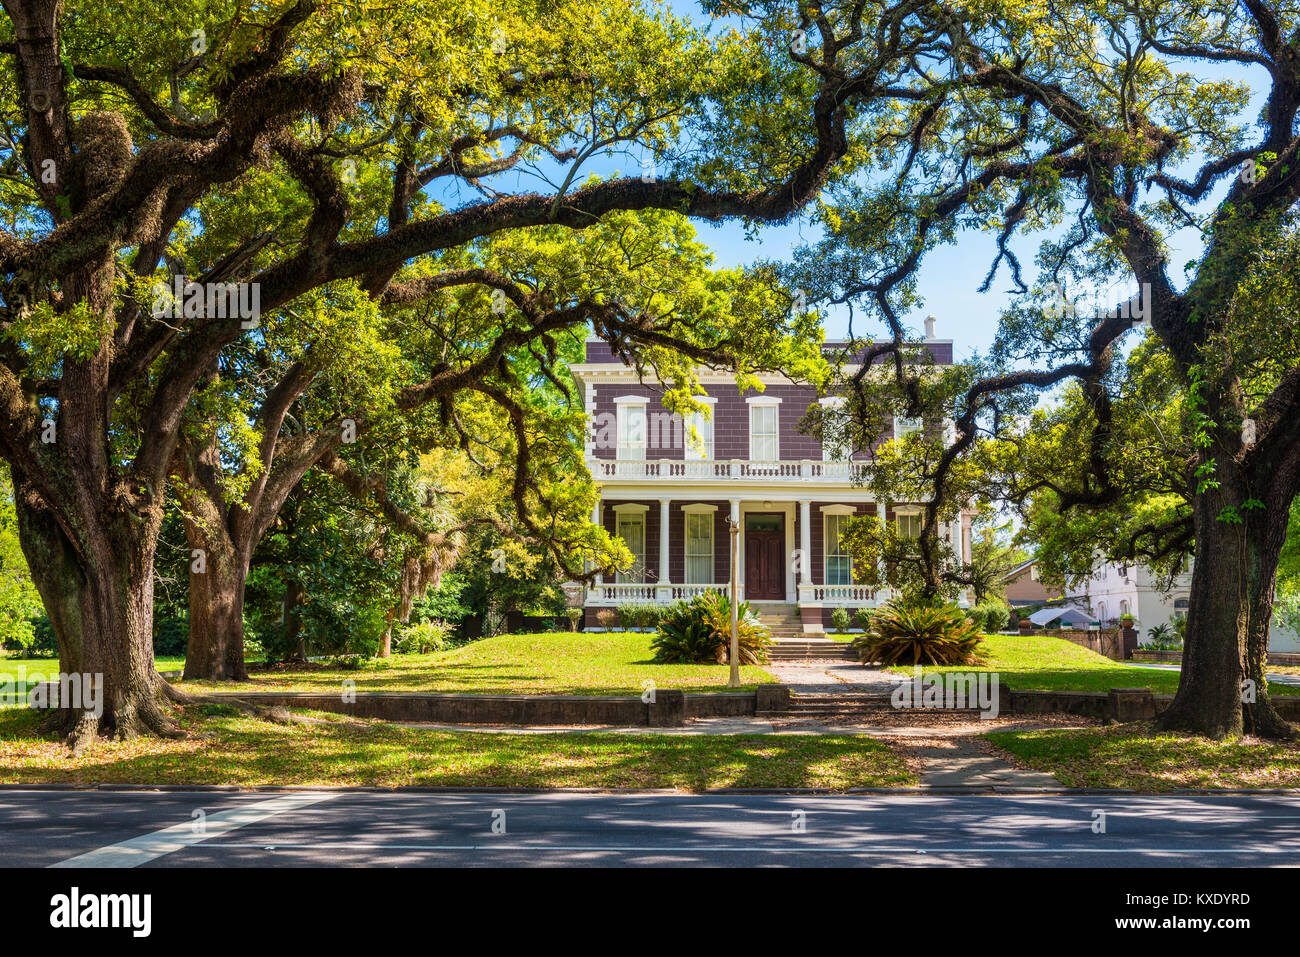 Typical old house with columns in downtown district of Mobile, Alabama, USA - Stock Image